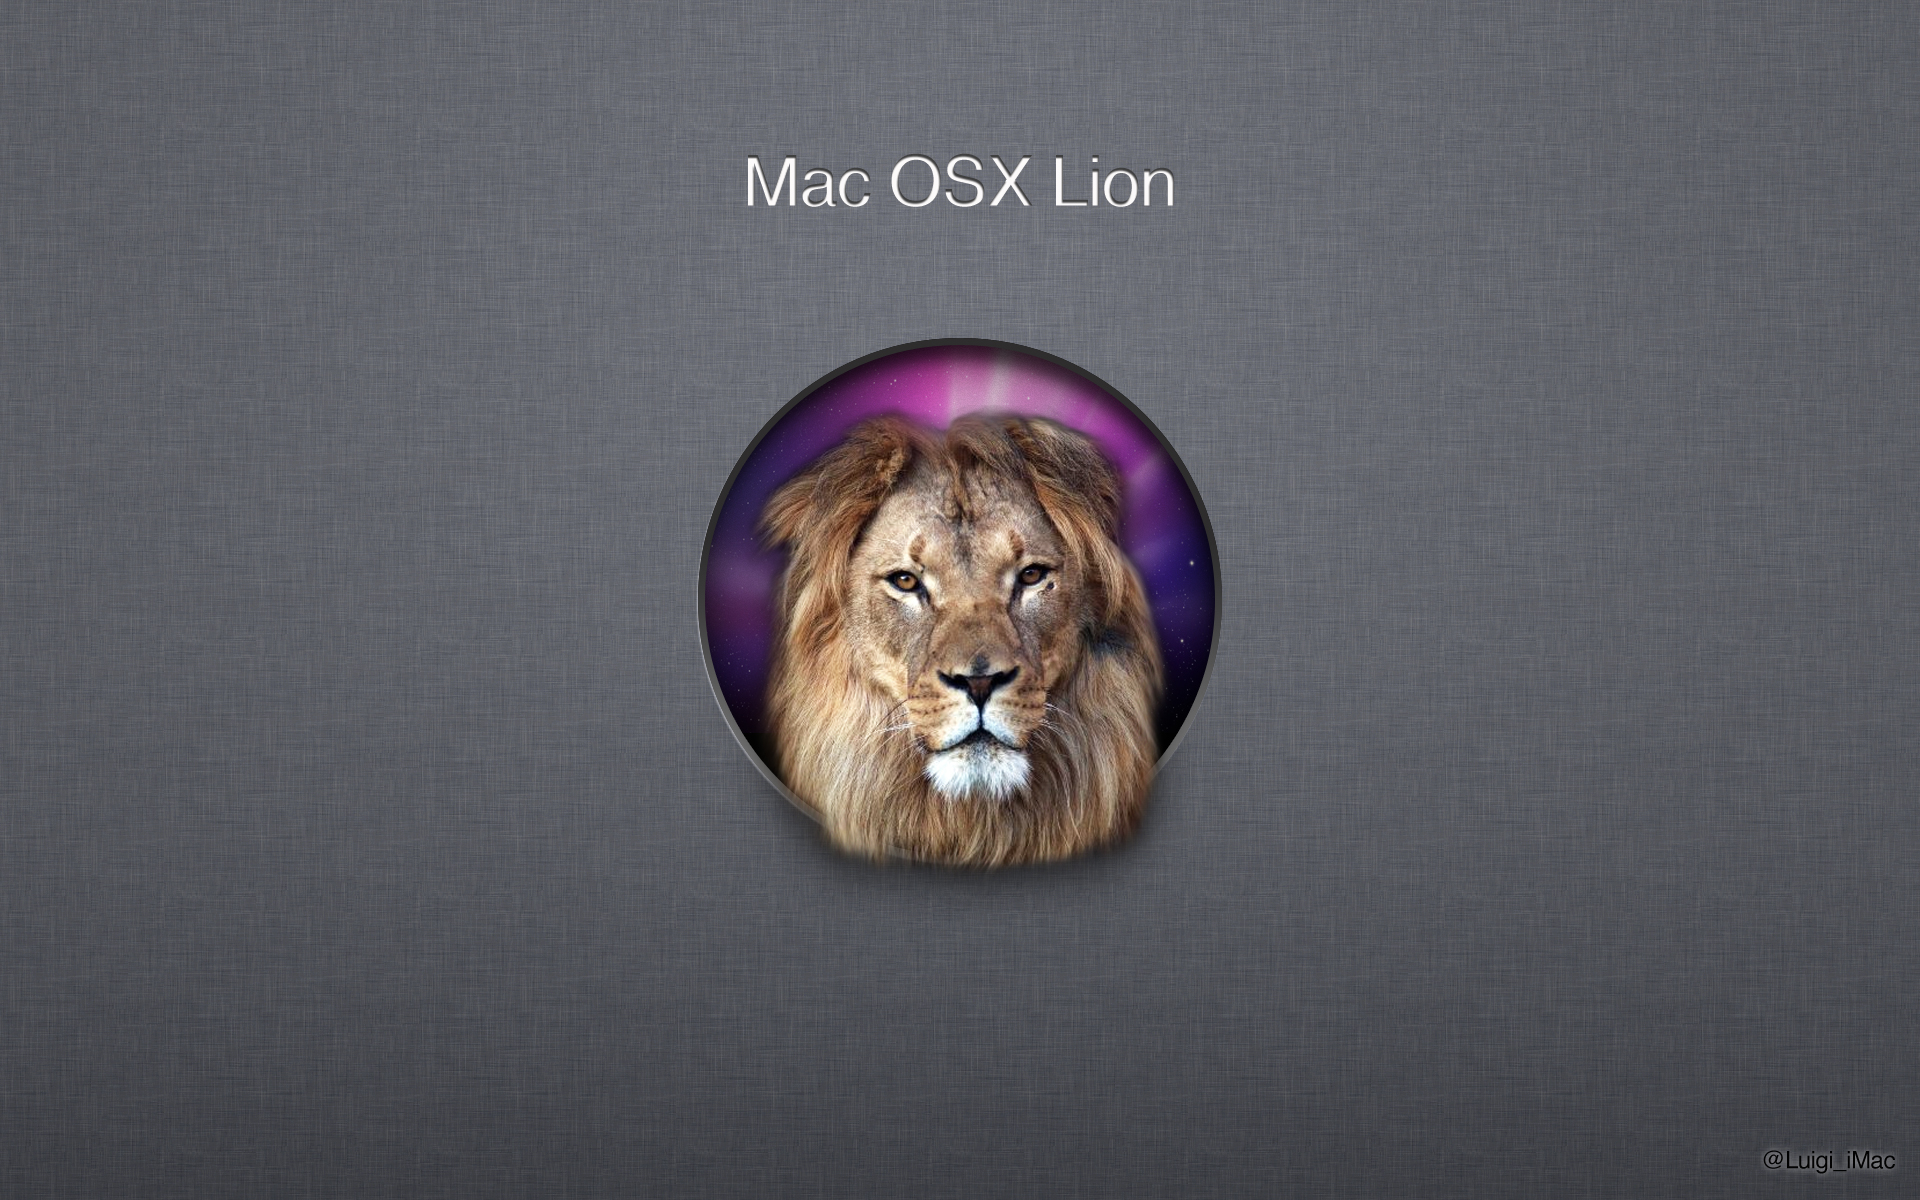 os x lion desktop wallpaper wallpaper os x lion desktop wallpaper hd